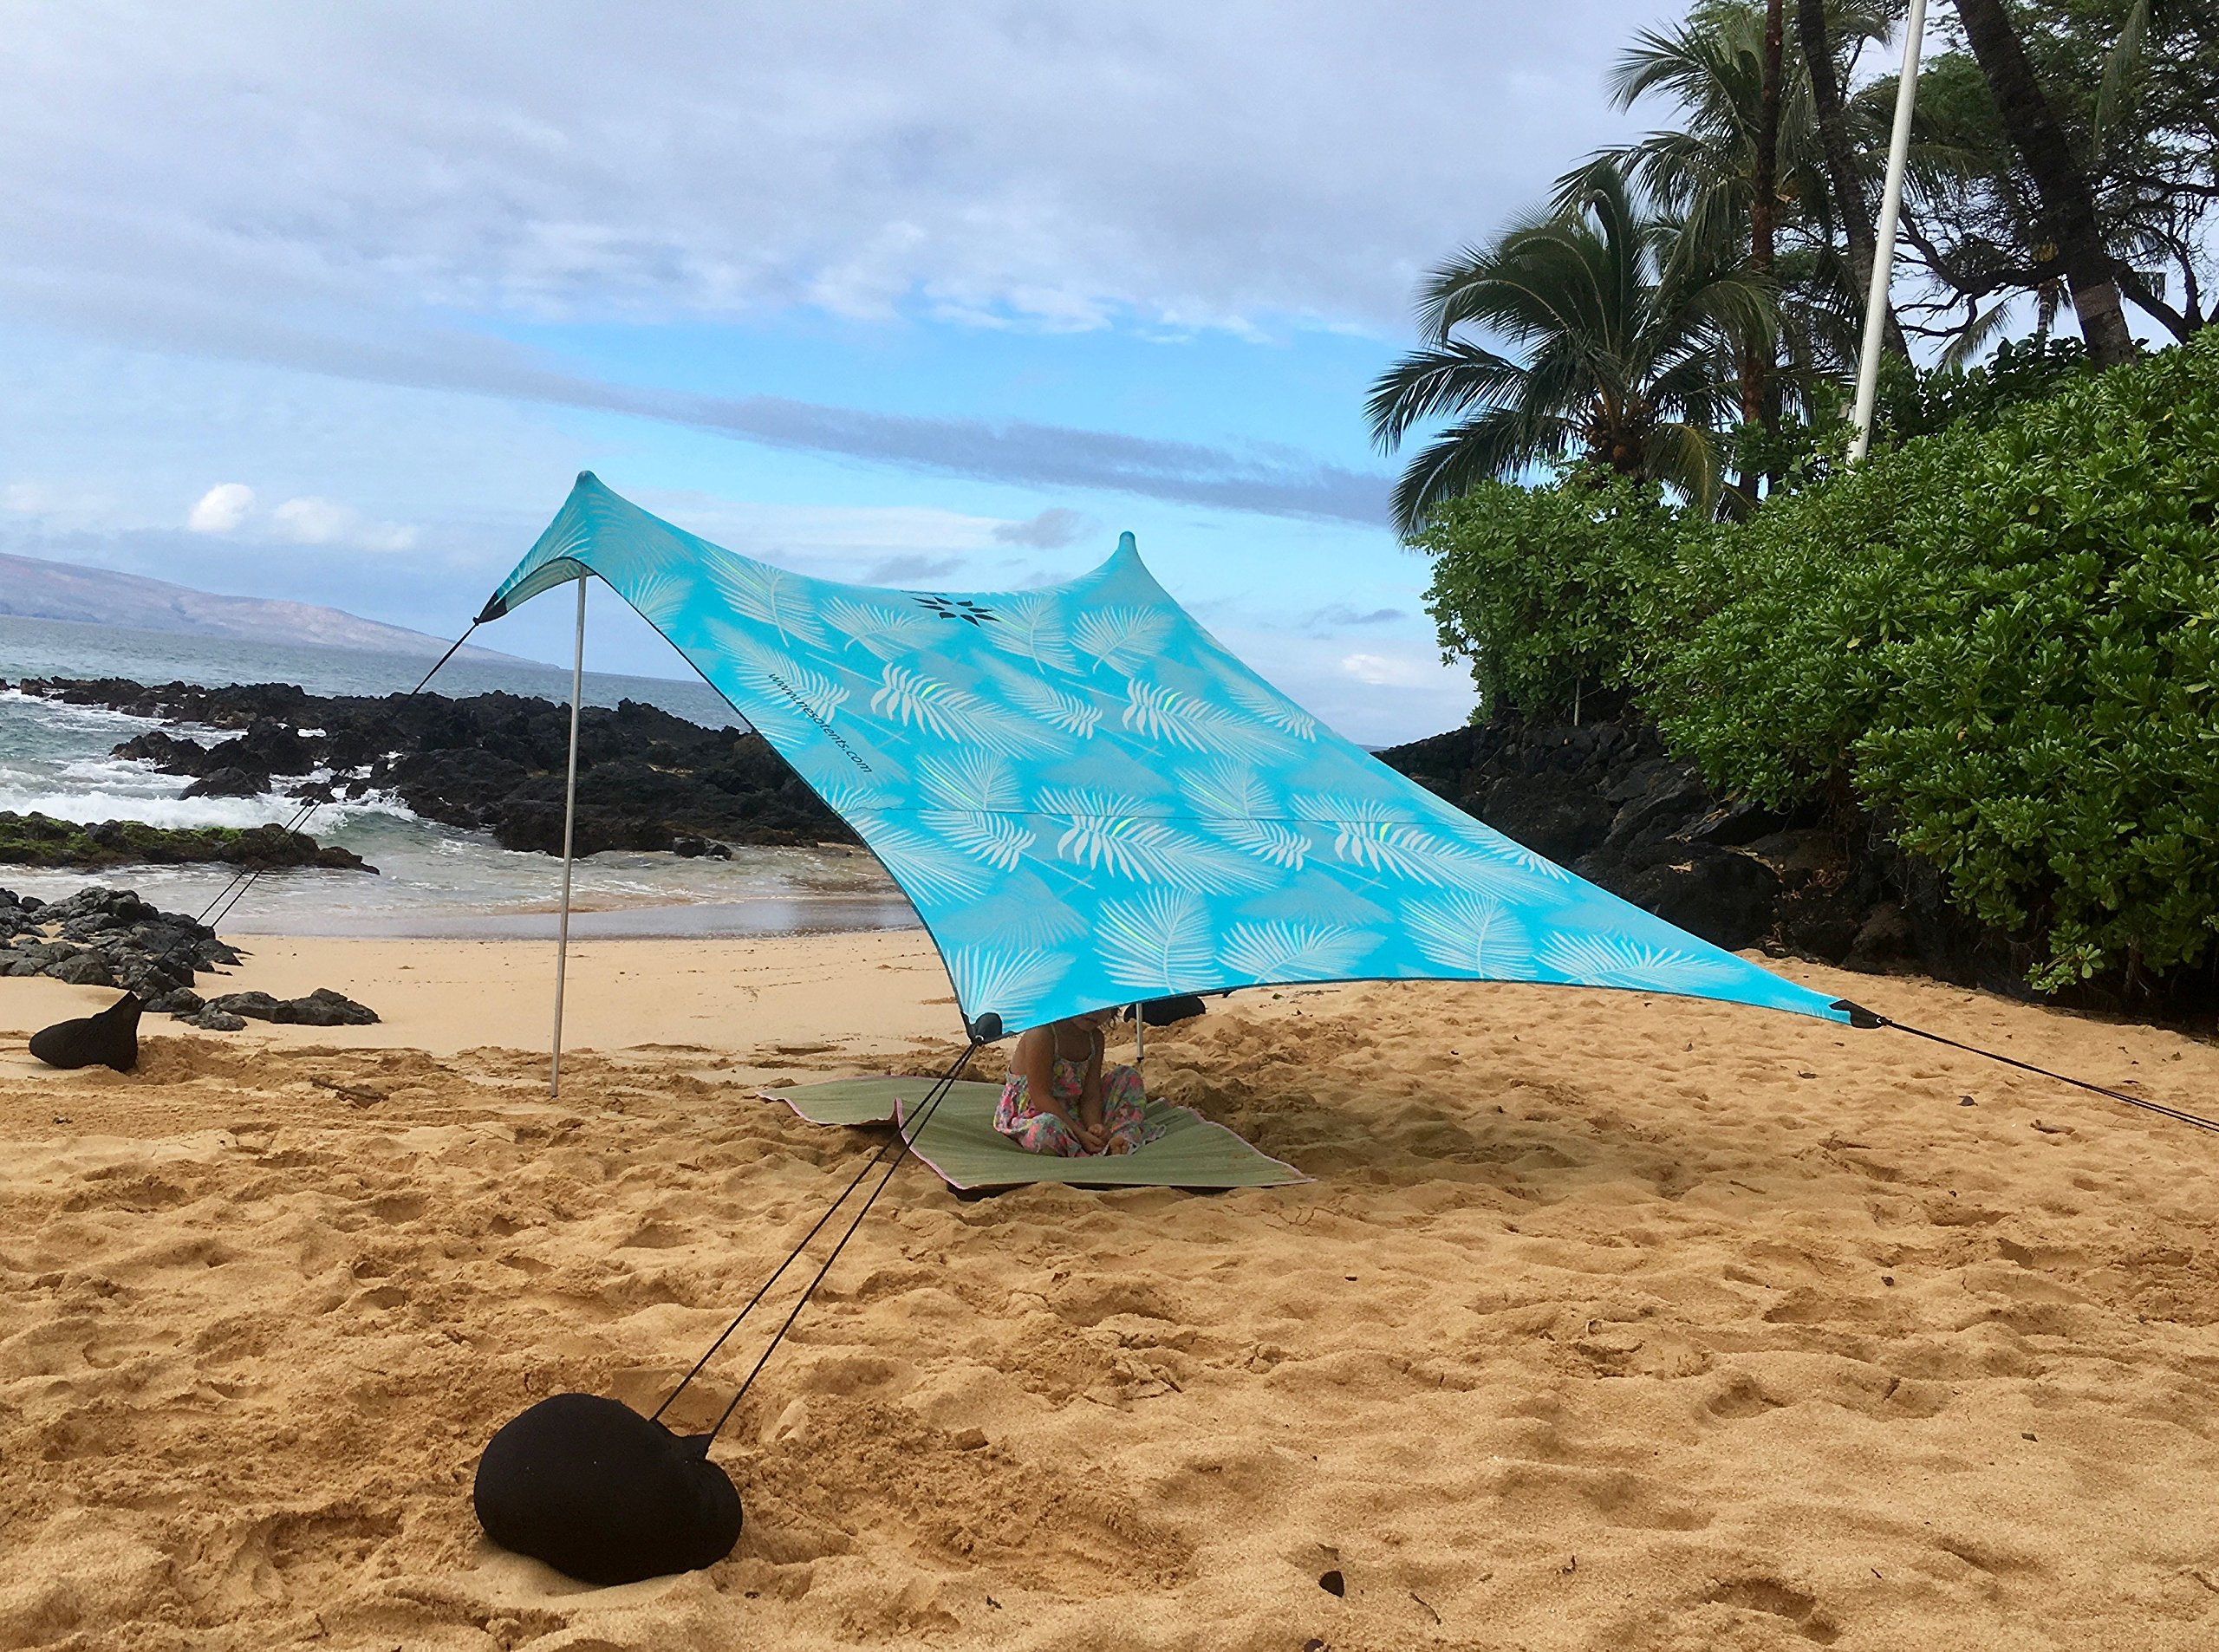 Neso Tents Beach Tent with Sand Anchor, Portable Canopy Sunshade - 7' x 7' - Patented Reinforced Corners(Aqua Fronds) by Neso